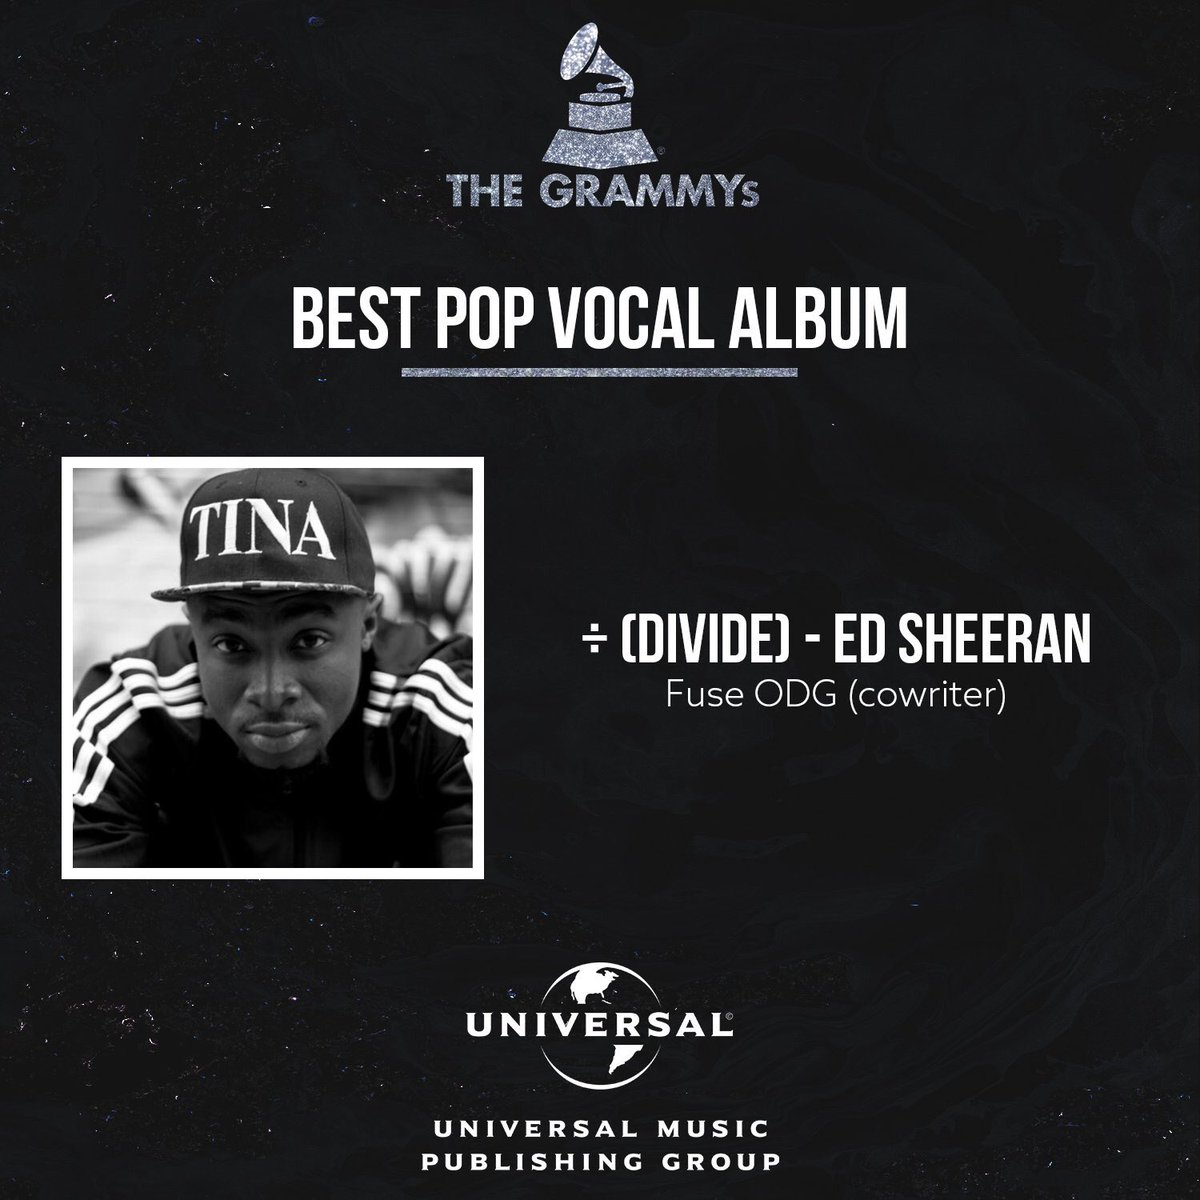 ED SHEERAN'S CO-WRITTEN ALBUM WITH FUSE ODG WINS GRAMMY AWARD